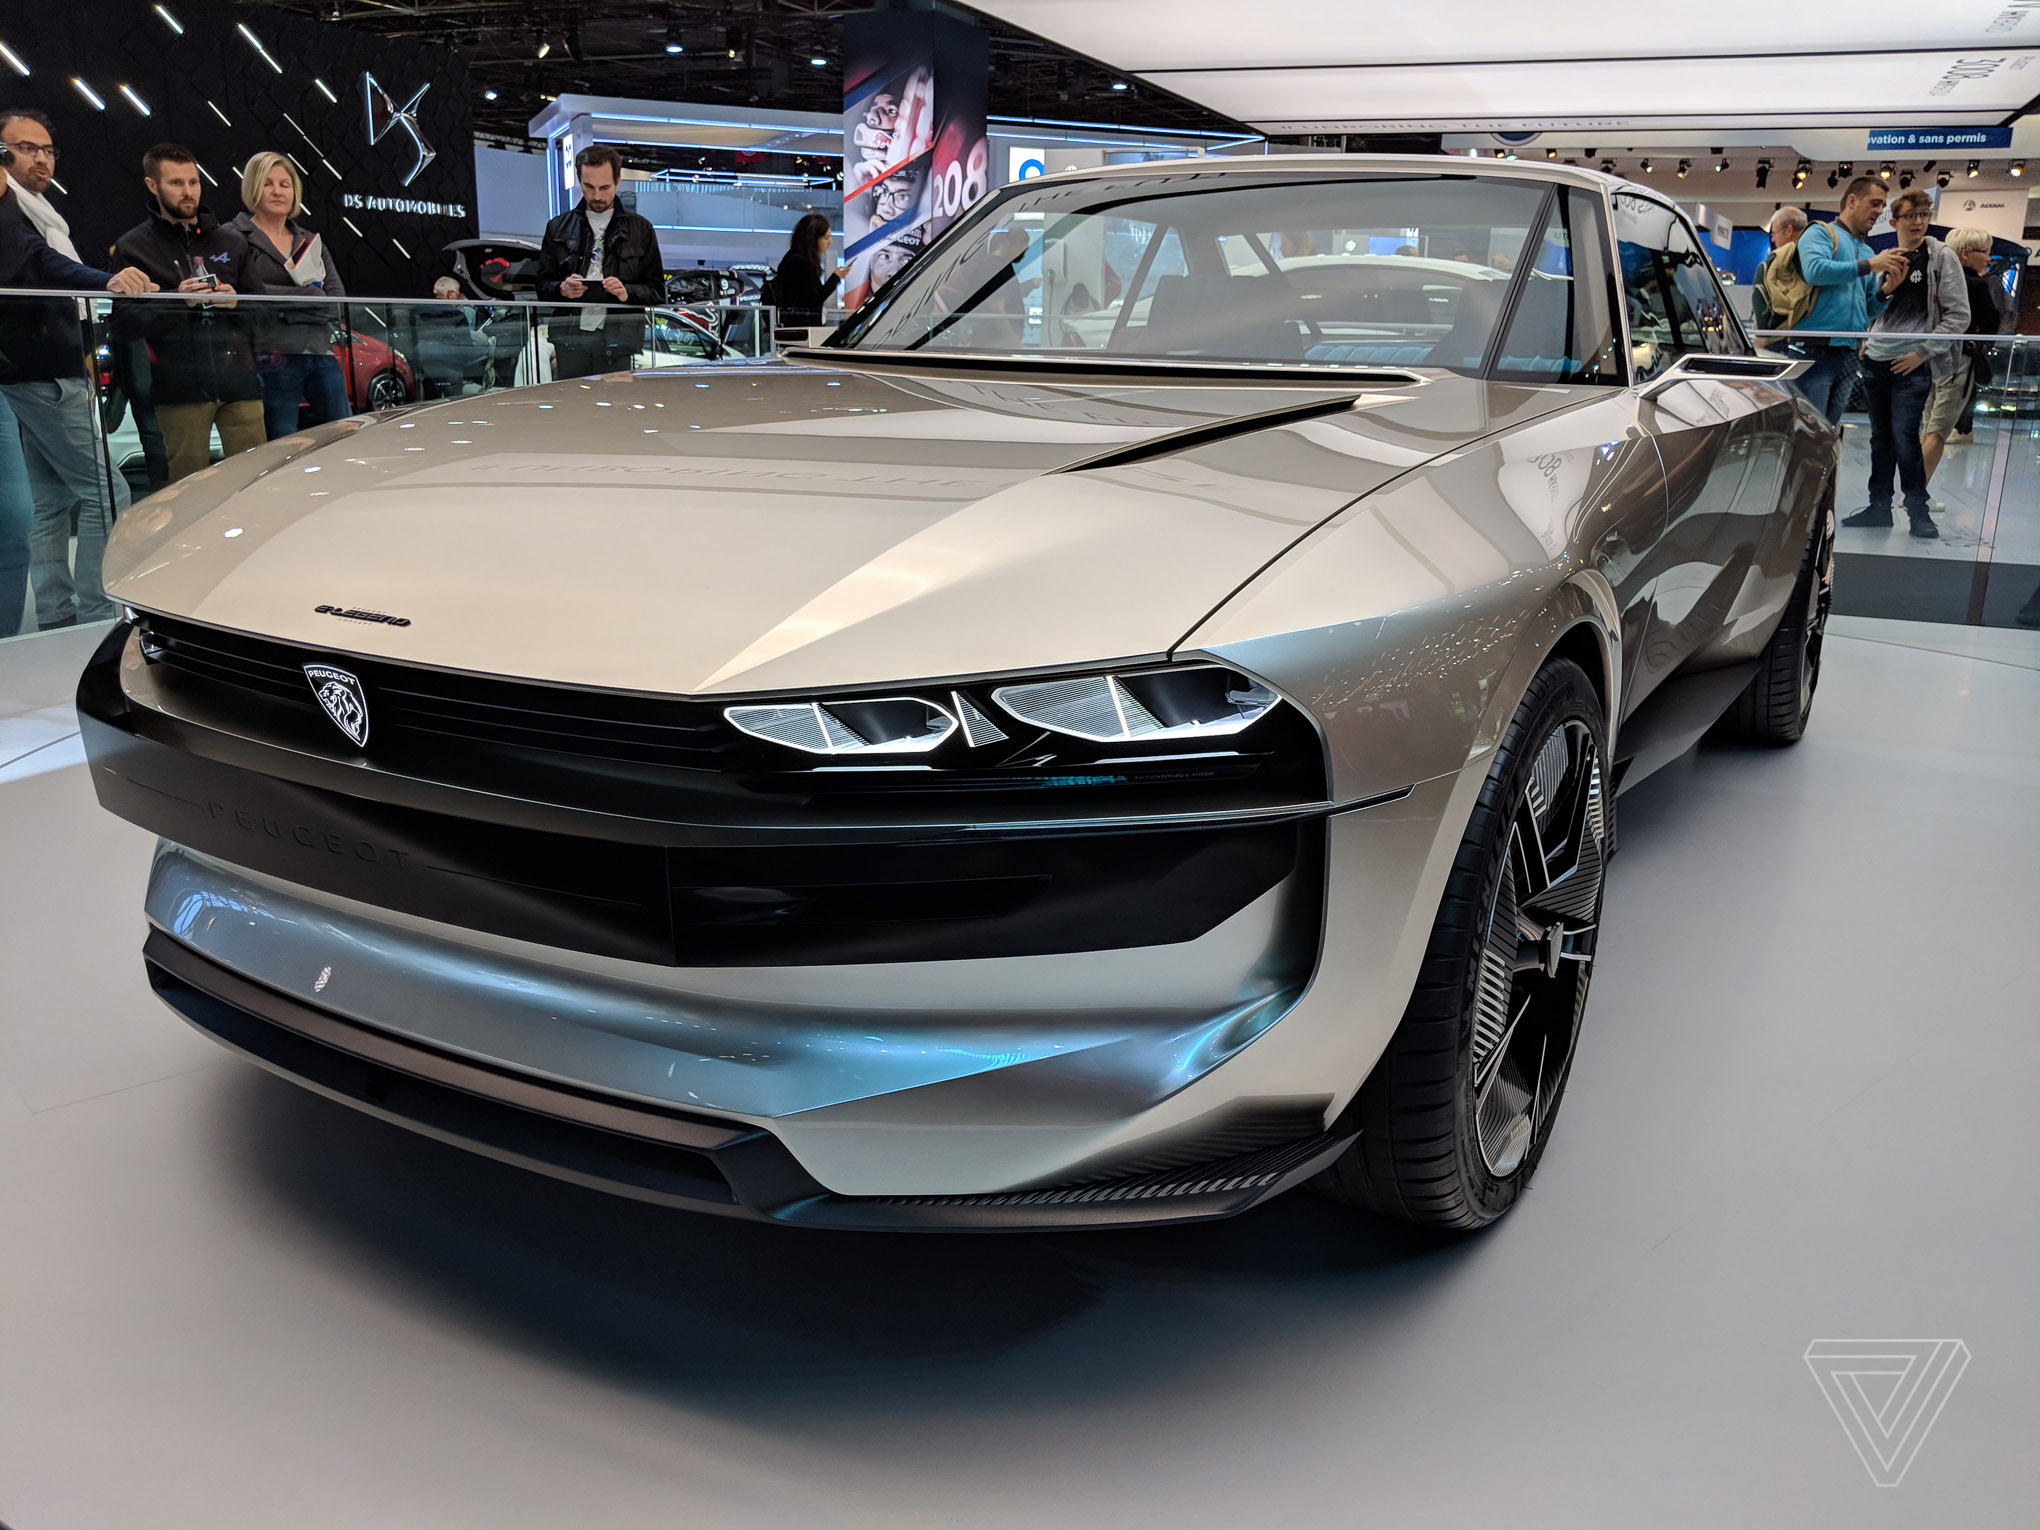 Peugeot S E Legend Concept Is A Muscle Car For The Electric Age